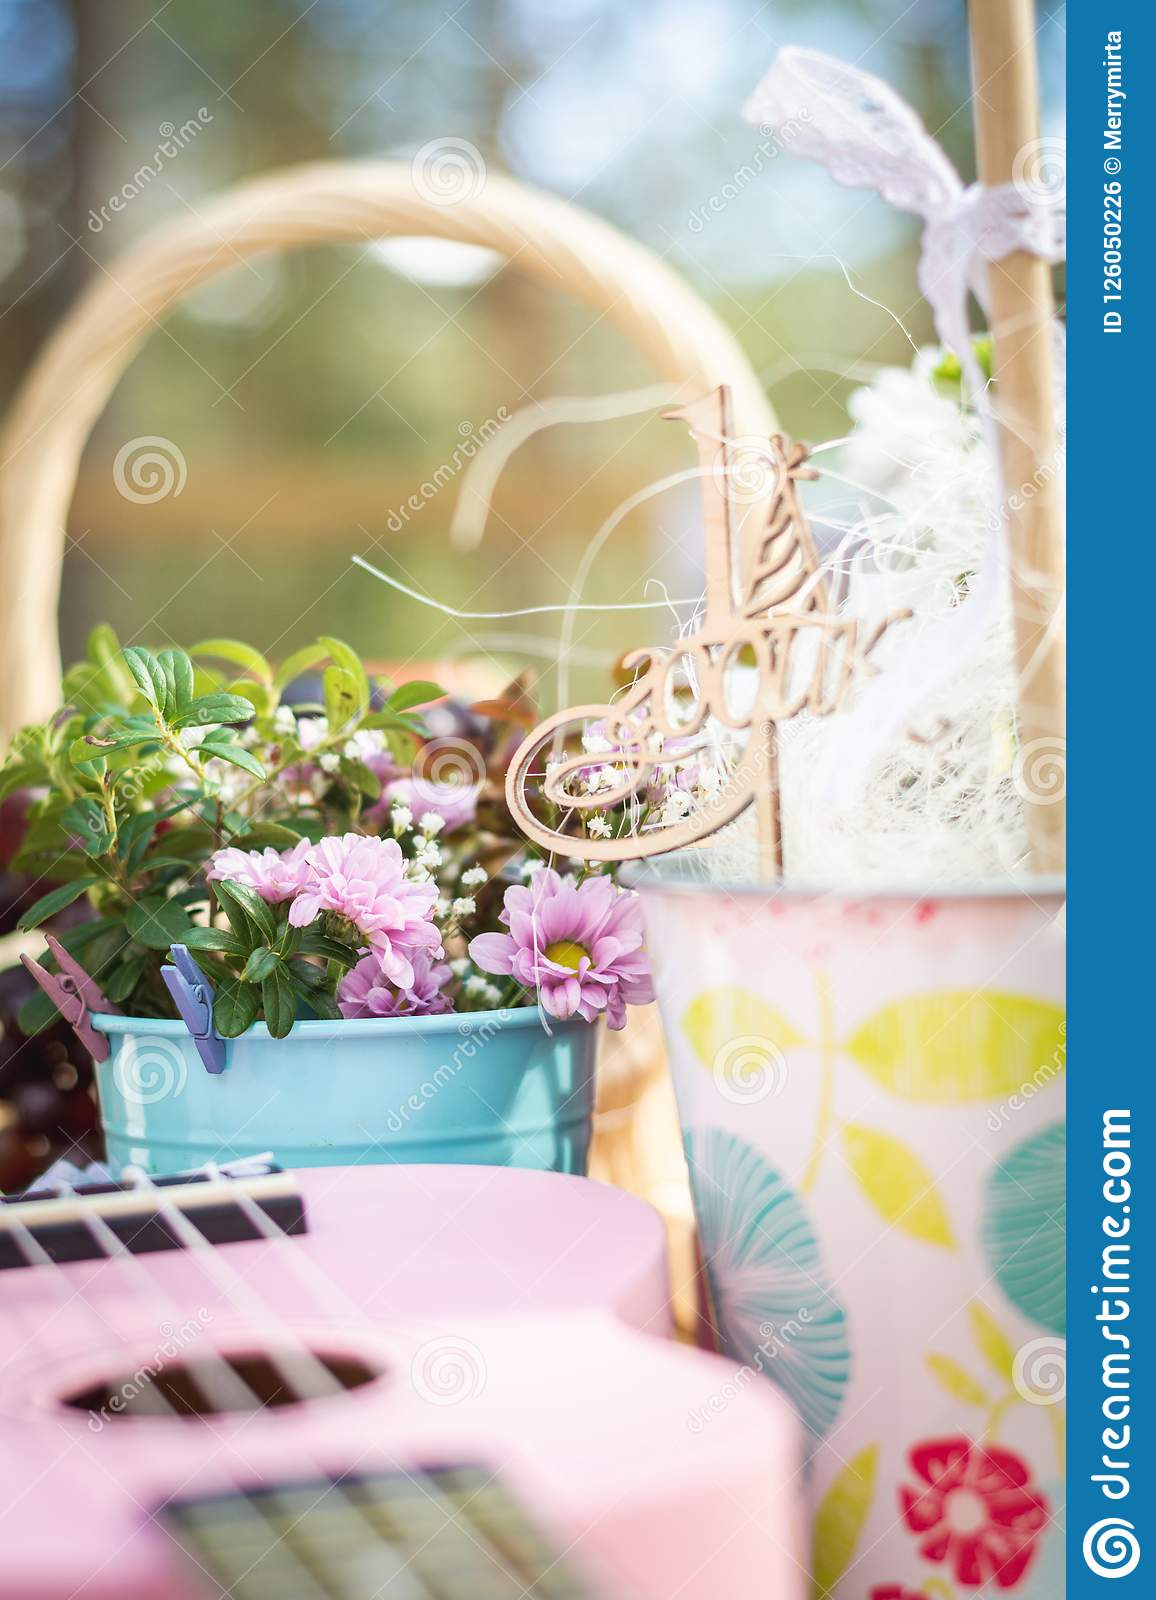 Picnic Party Table Decoration Baskets With Fruits On A Wooden Table Flowers Pink Small Guitar And Pinwheel Stock Photo Image Of Cooking Fruits 126050226